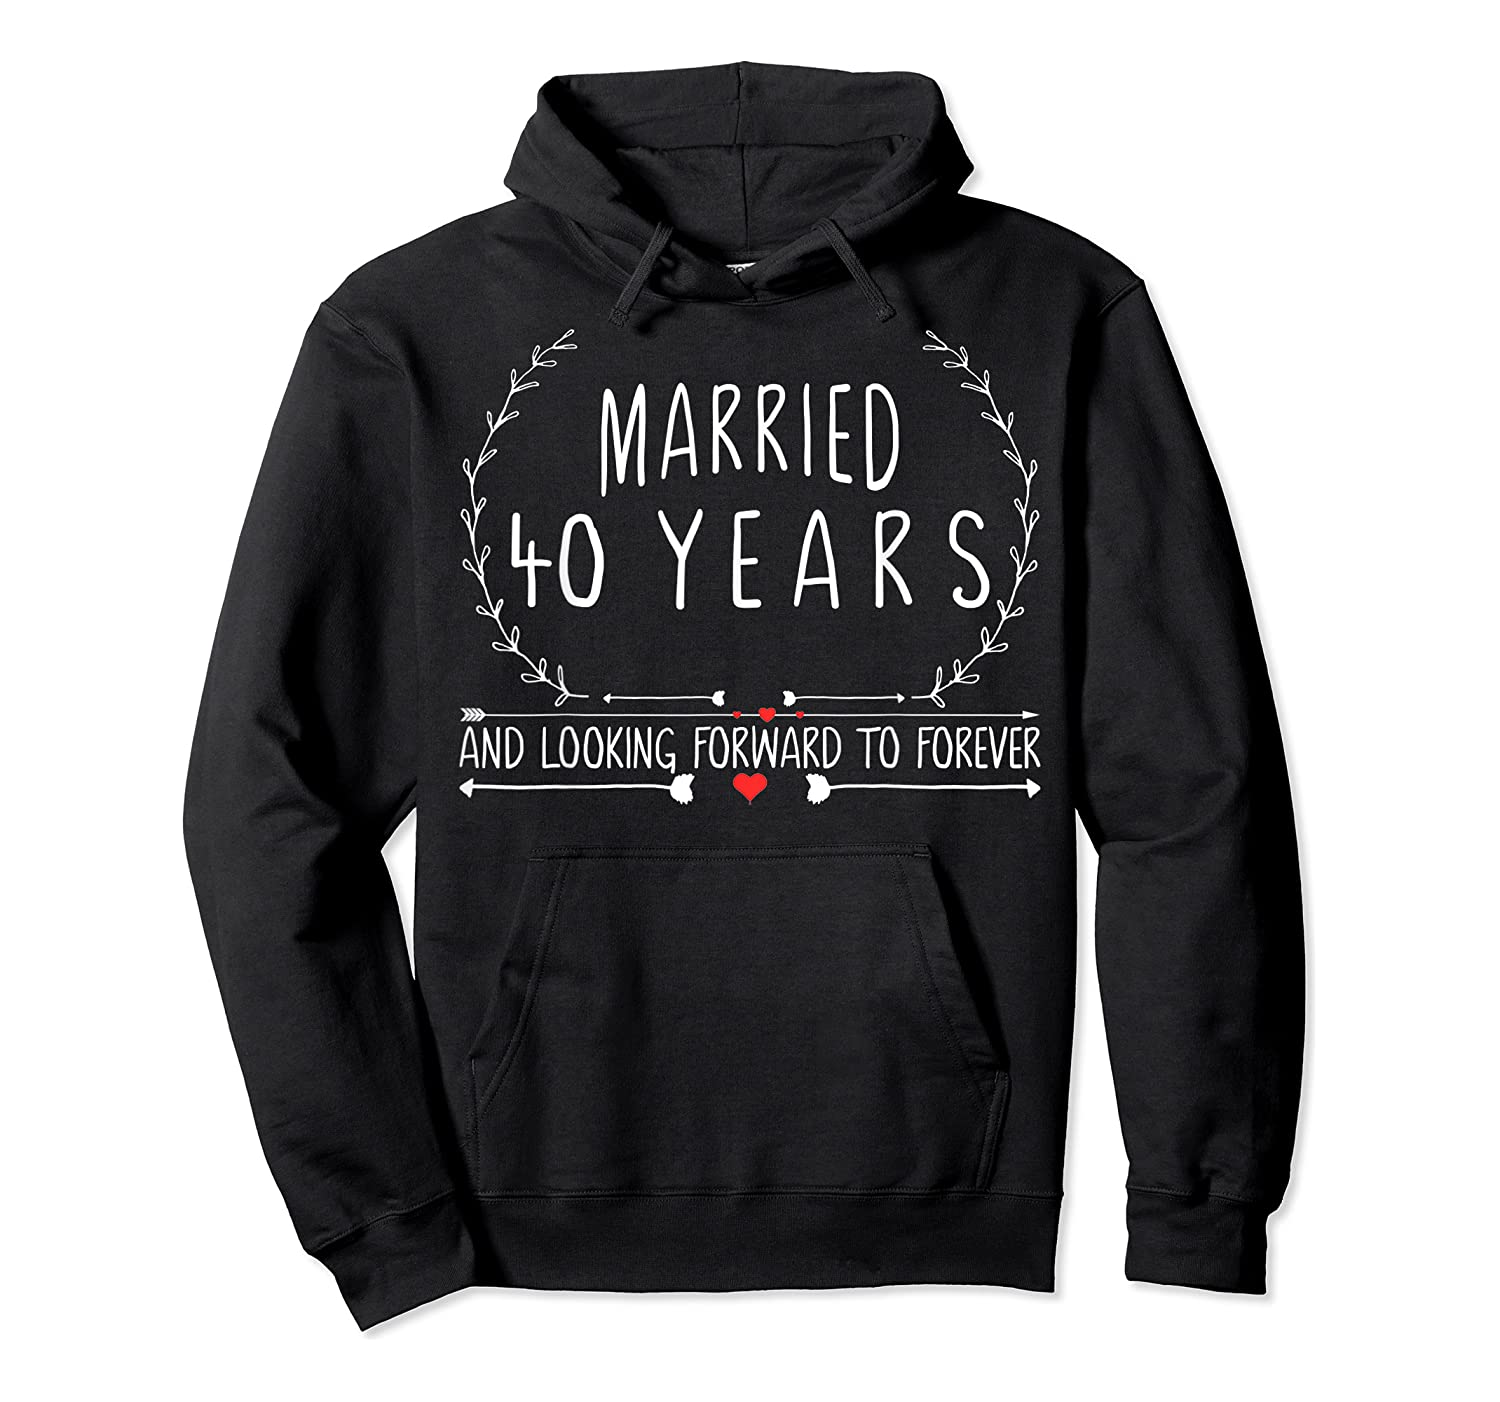 Wedding Anniversary 40th Gifts For Her Him Couples Shirts Unisex Pullover Hoodie